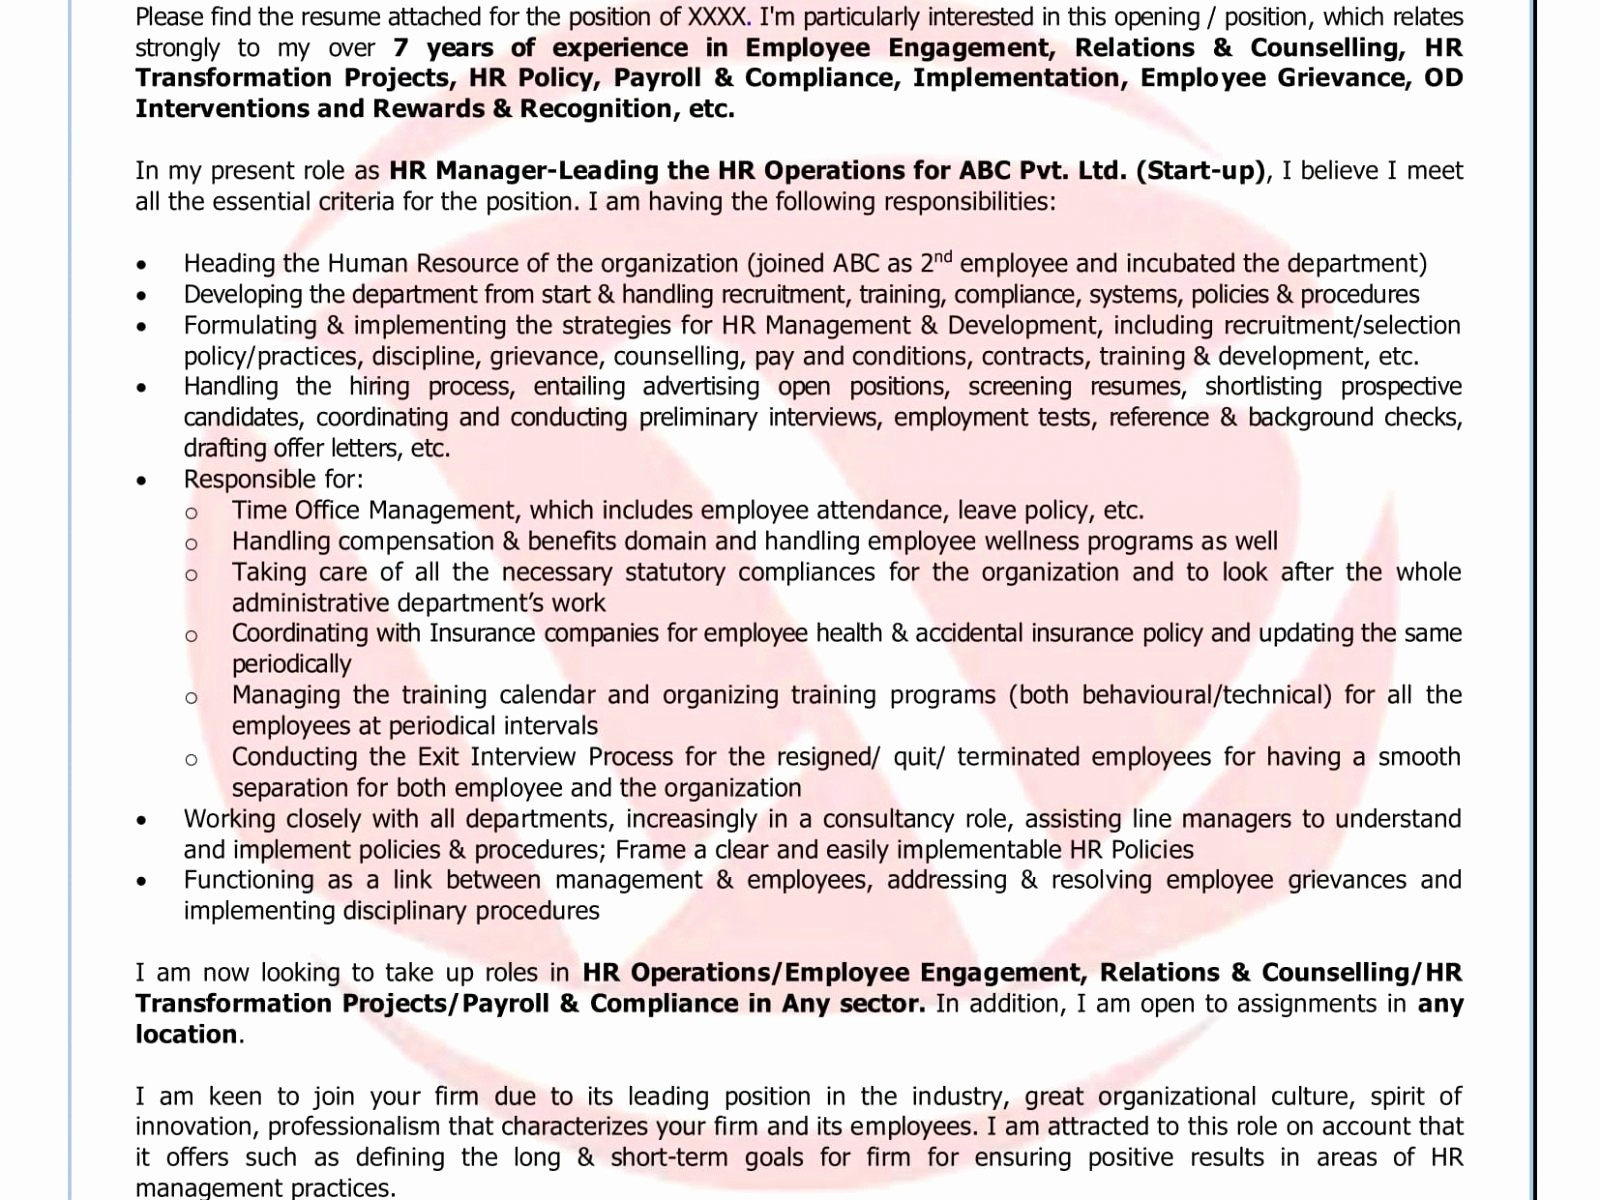 Change Of Name Letter Template - Change Business Name Letter Template Save Informatics Journals